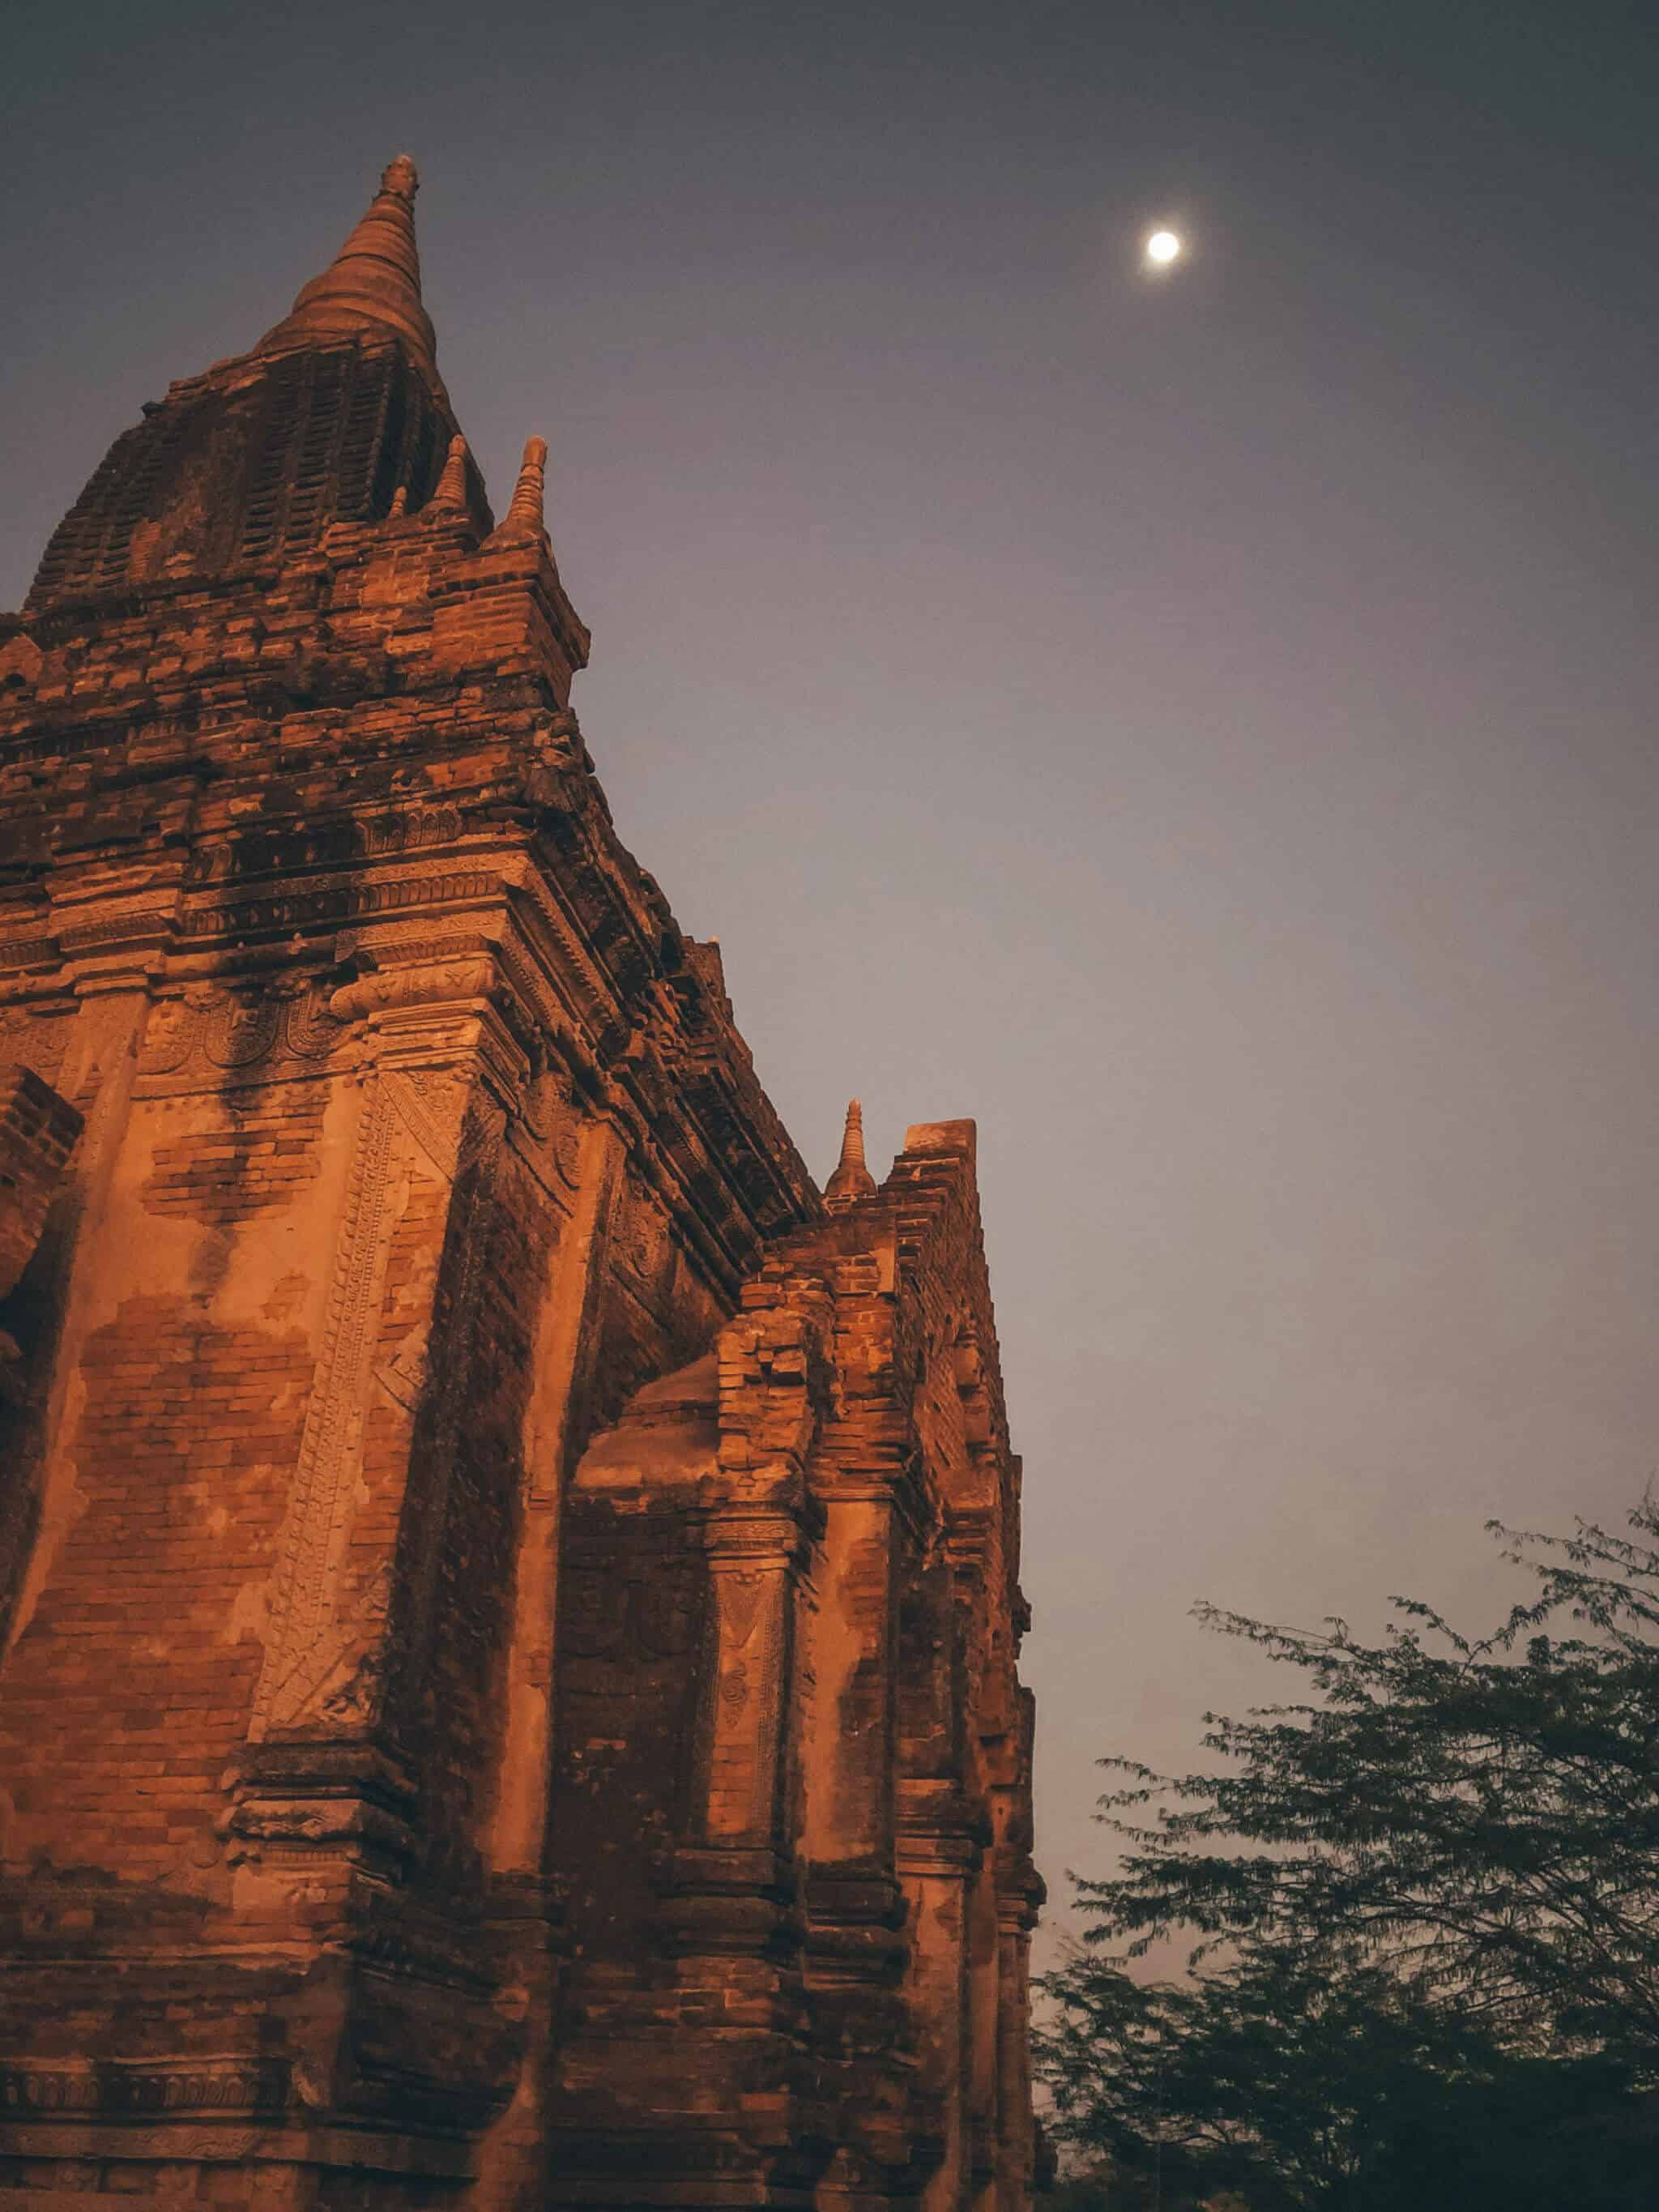 Moonlight in Bagan